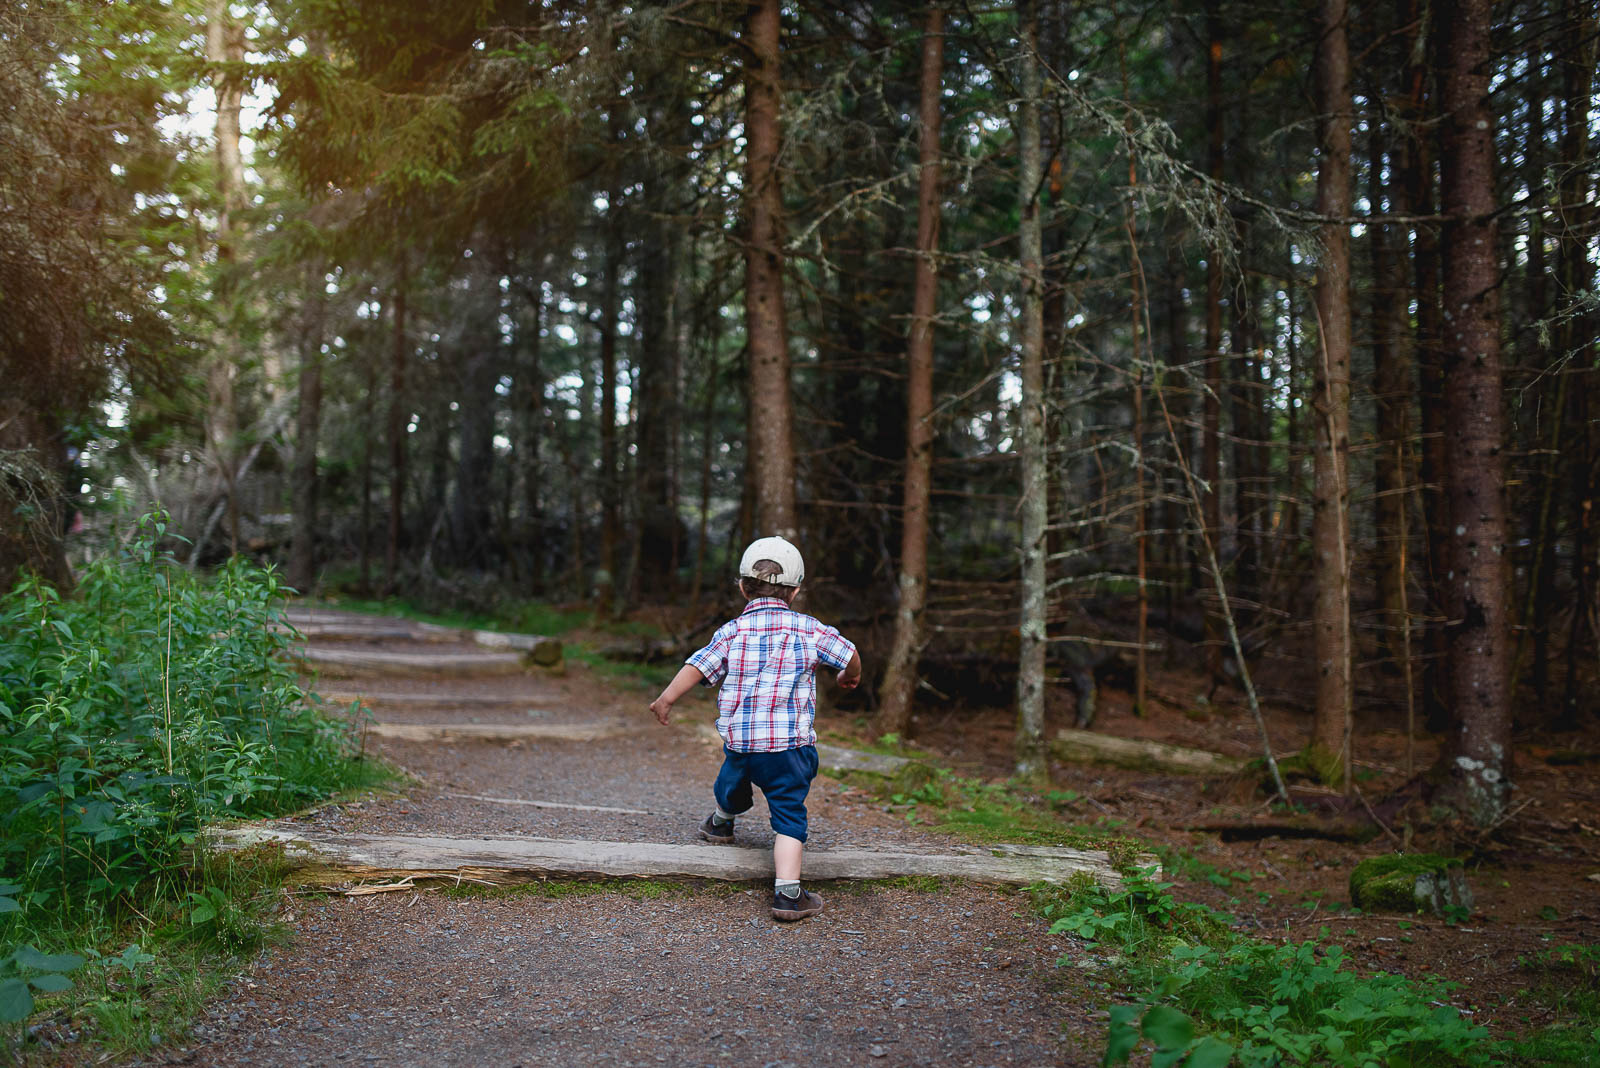 Photo from our family vacation at Acadia National Park in Maine. Sometimes the best way to photograph your kids is by letting them do their thing and following close behind.